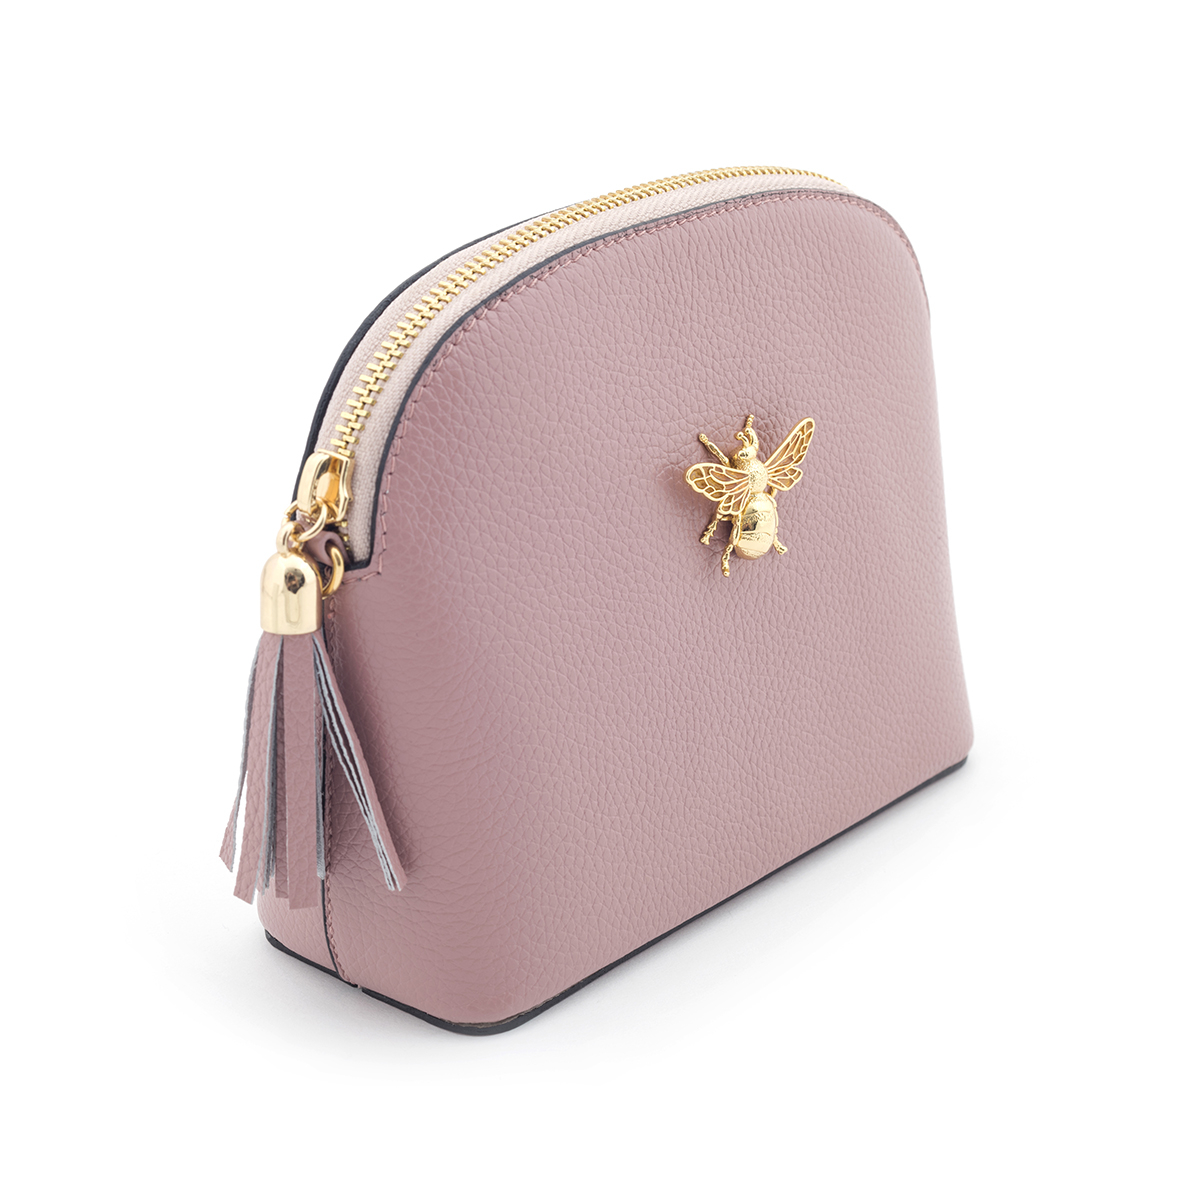 Queen Bee Leather Handbag - Blush